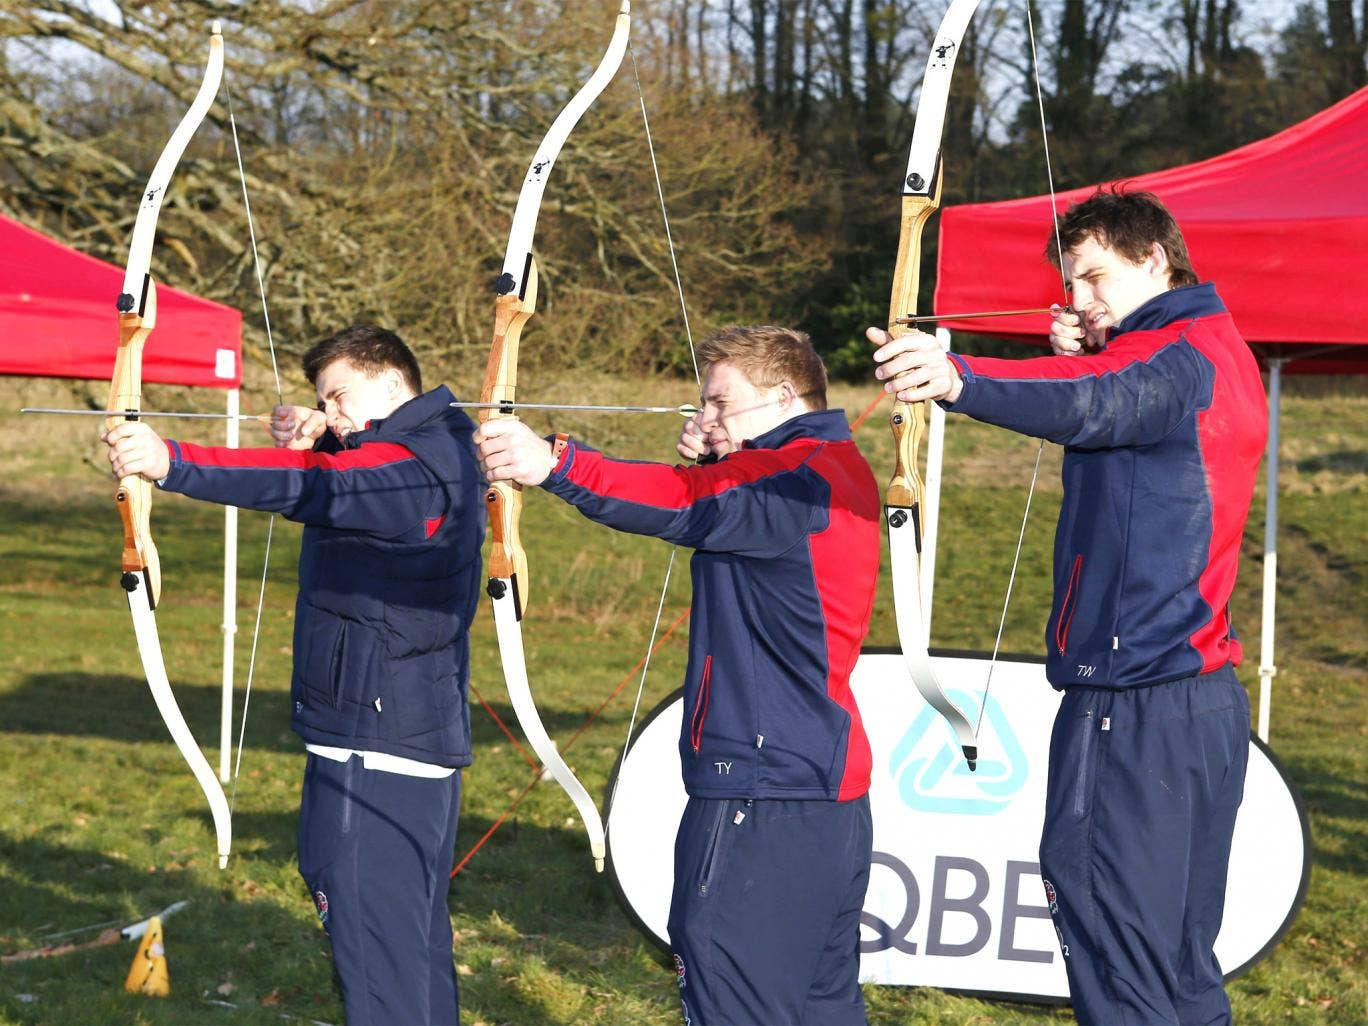 England's Ben Youngs, Tom Youngs and Tom Wood (from left) try their hand at archery at Pennyhill Park yesterday